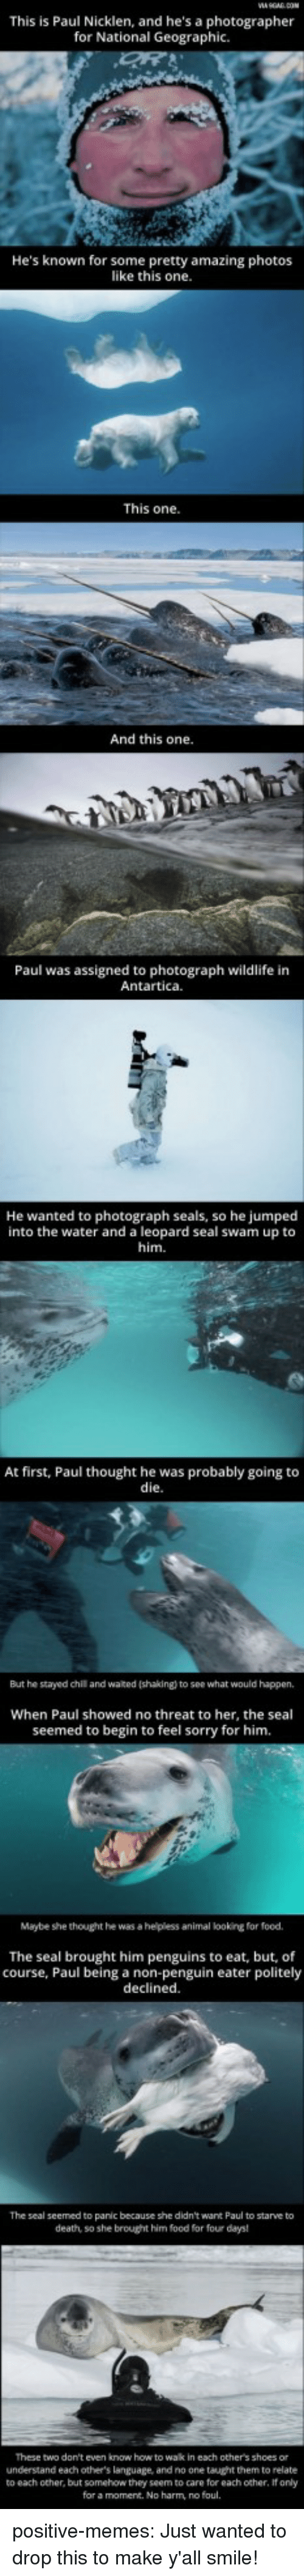 leopard: This is Paul Nicklen, and he's a photographer  for National Geographic.  He's known for some pretty amazing photos  like this one  This one  And this one.  Paul was assigned to photograph wildlife in  Antartica.  He  wanted to photograph seals, so he jumped  into the water and a leopard seal swam up to  him.  At first, Paul thought he was probably going to  die  But he stayed chil and waited (shaking) to see what would happen,  When Paul showed no threat to her, the seal  seemed to begin to feel sorry for him.  Maybe she thought he was a helpless animal looking for food.  The seal brought him penguins to eat, but, of  course, Paul being a non-penguin eater politely  declined.  The seal seemed to panic because she didn't want Paul to starve to  death, so she brought him food for four days  These two don't even know how to wak in each other's shoes or  understand each others language, and no one taught them to relate  to each other, but somehow they seem to care for each other, If only  for a moment. No harm, no foul. positive-memes:  Just wanted to drop this to make y'all smile!